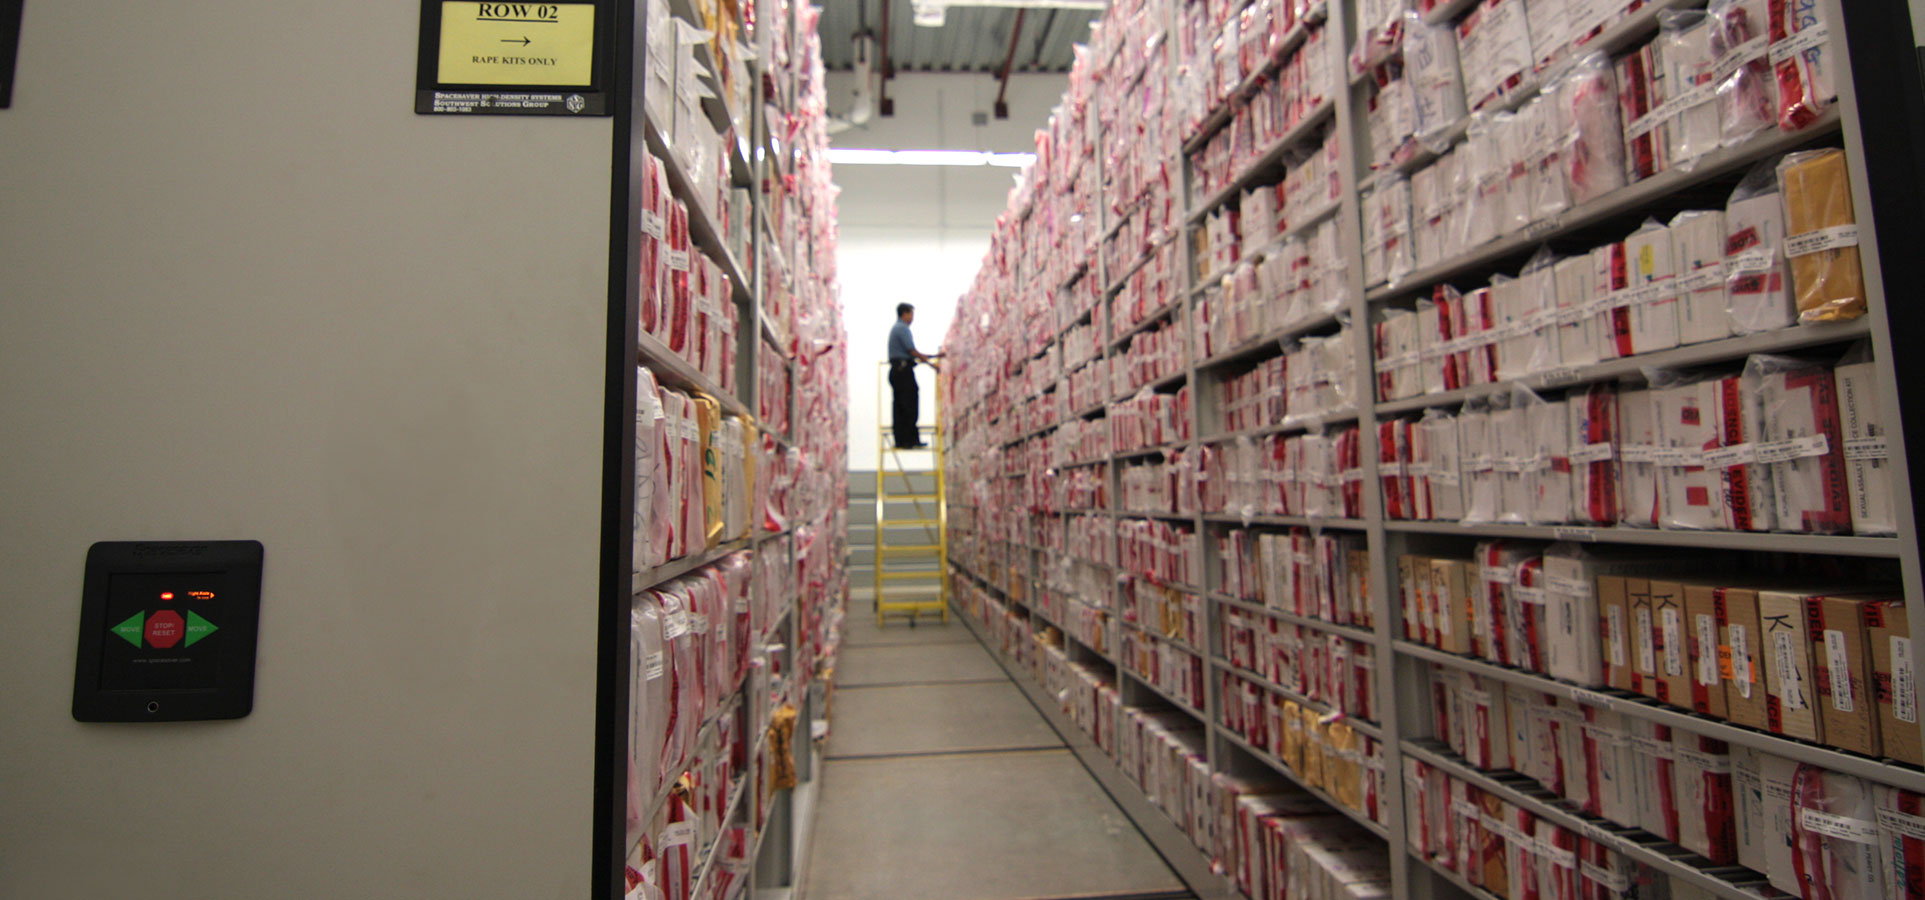 evidence managements - storage for chain of custody